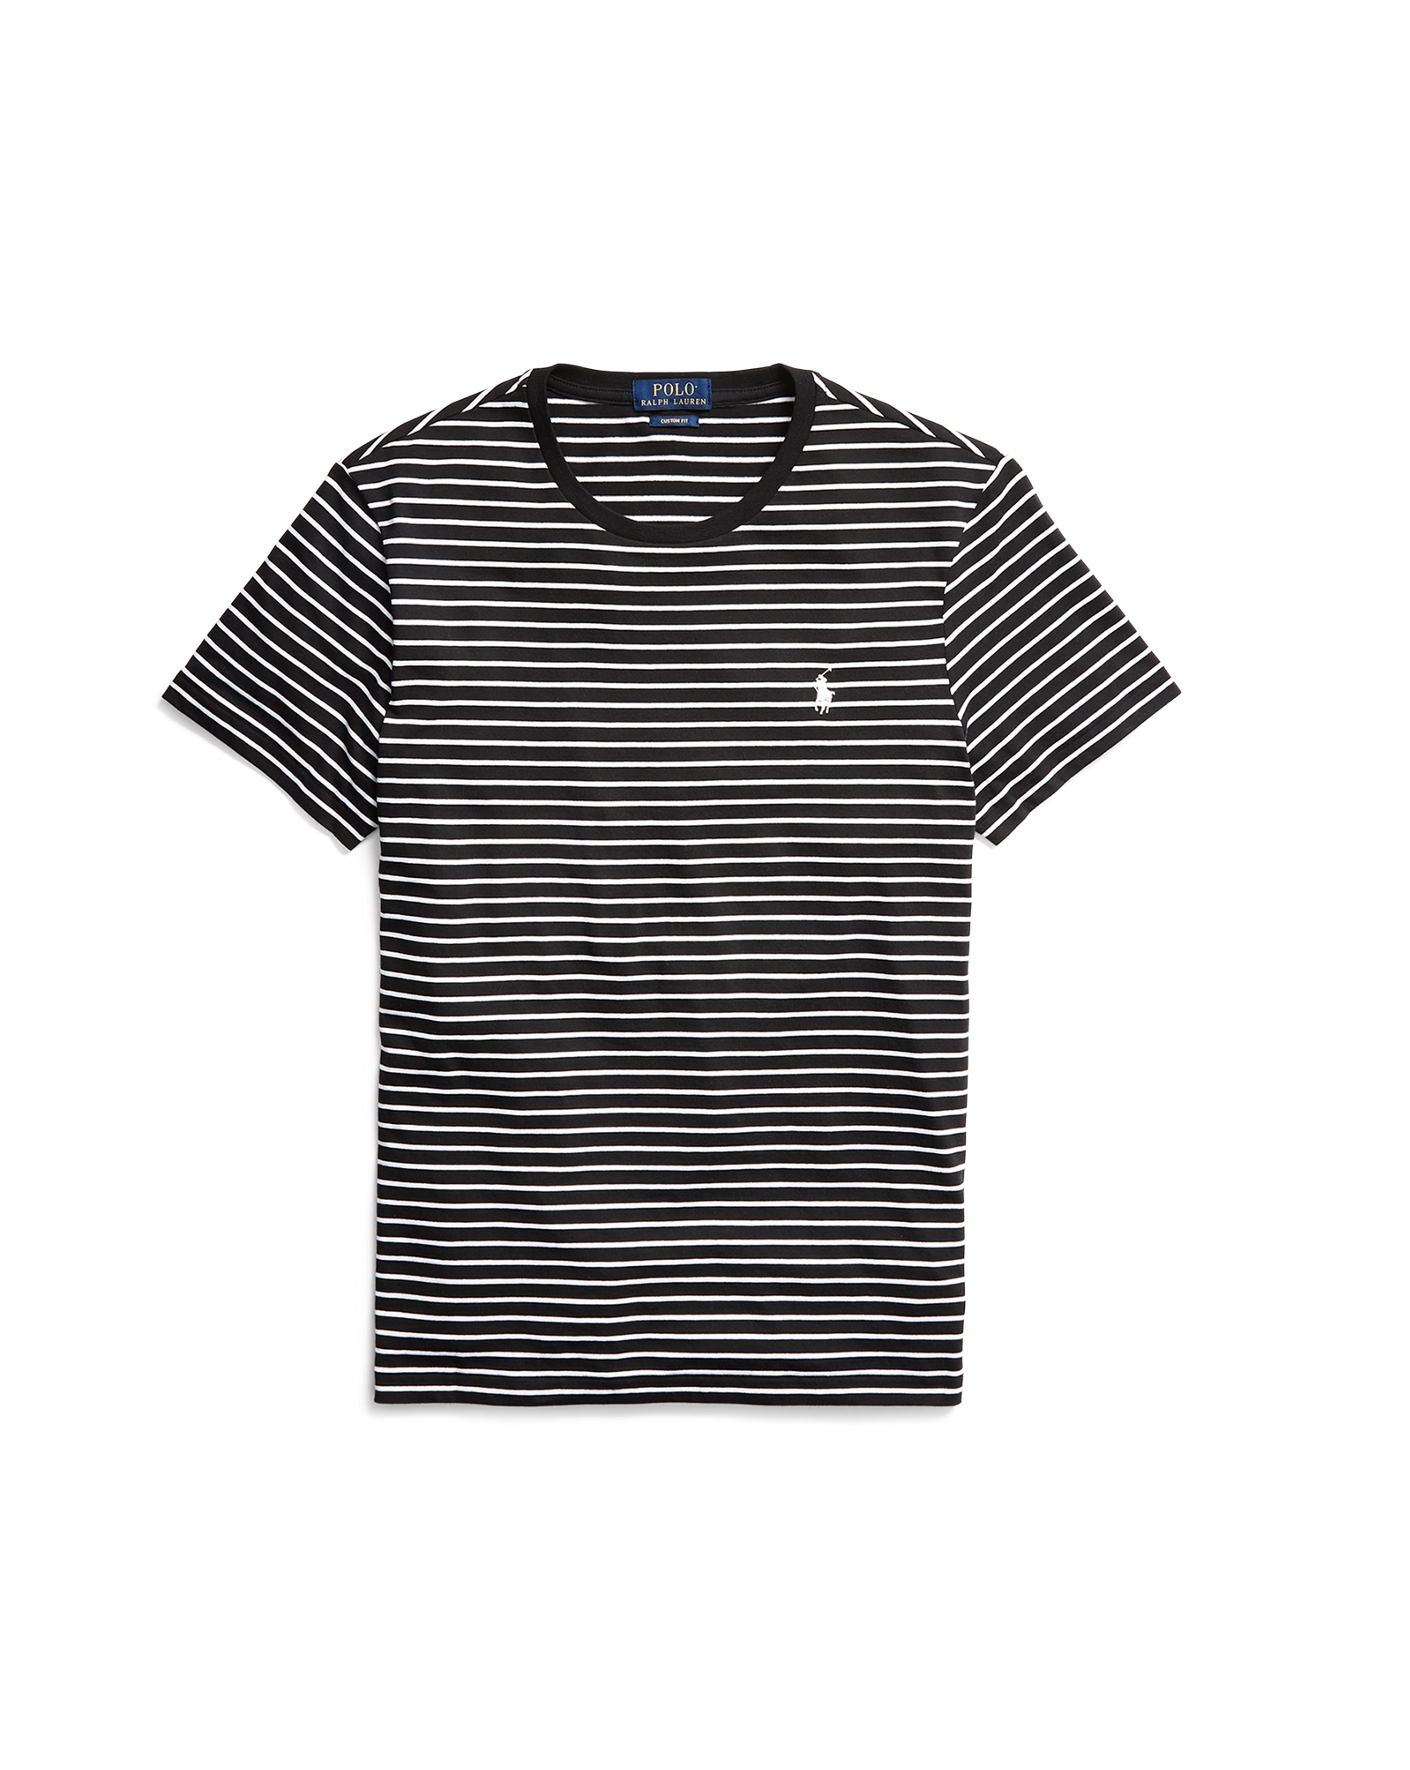 Black t shirt with white stripes - Striped Cotton Hooded T Shirt Polo Ralph Lauren Tees Ralphlauren Com